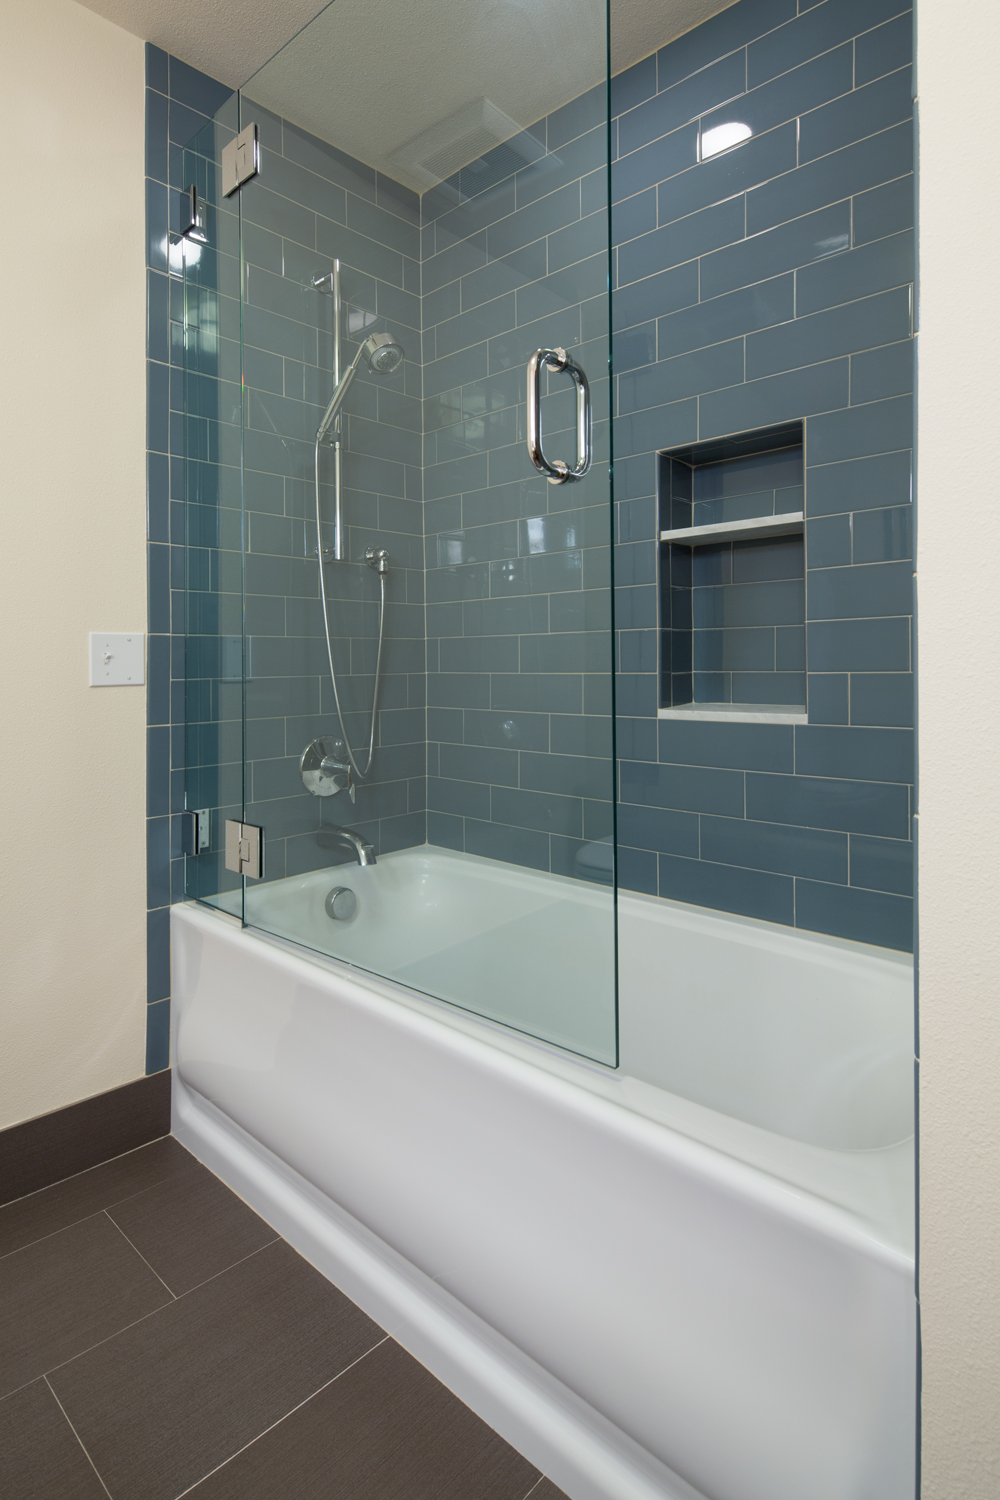 Genial Frameless Glass Panel With Chrome Handle For Larger Built In Corner Bathtub  Blue Deep Ocean Ceramic